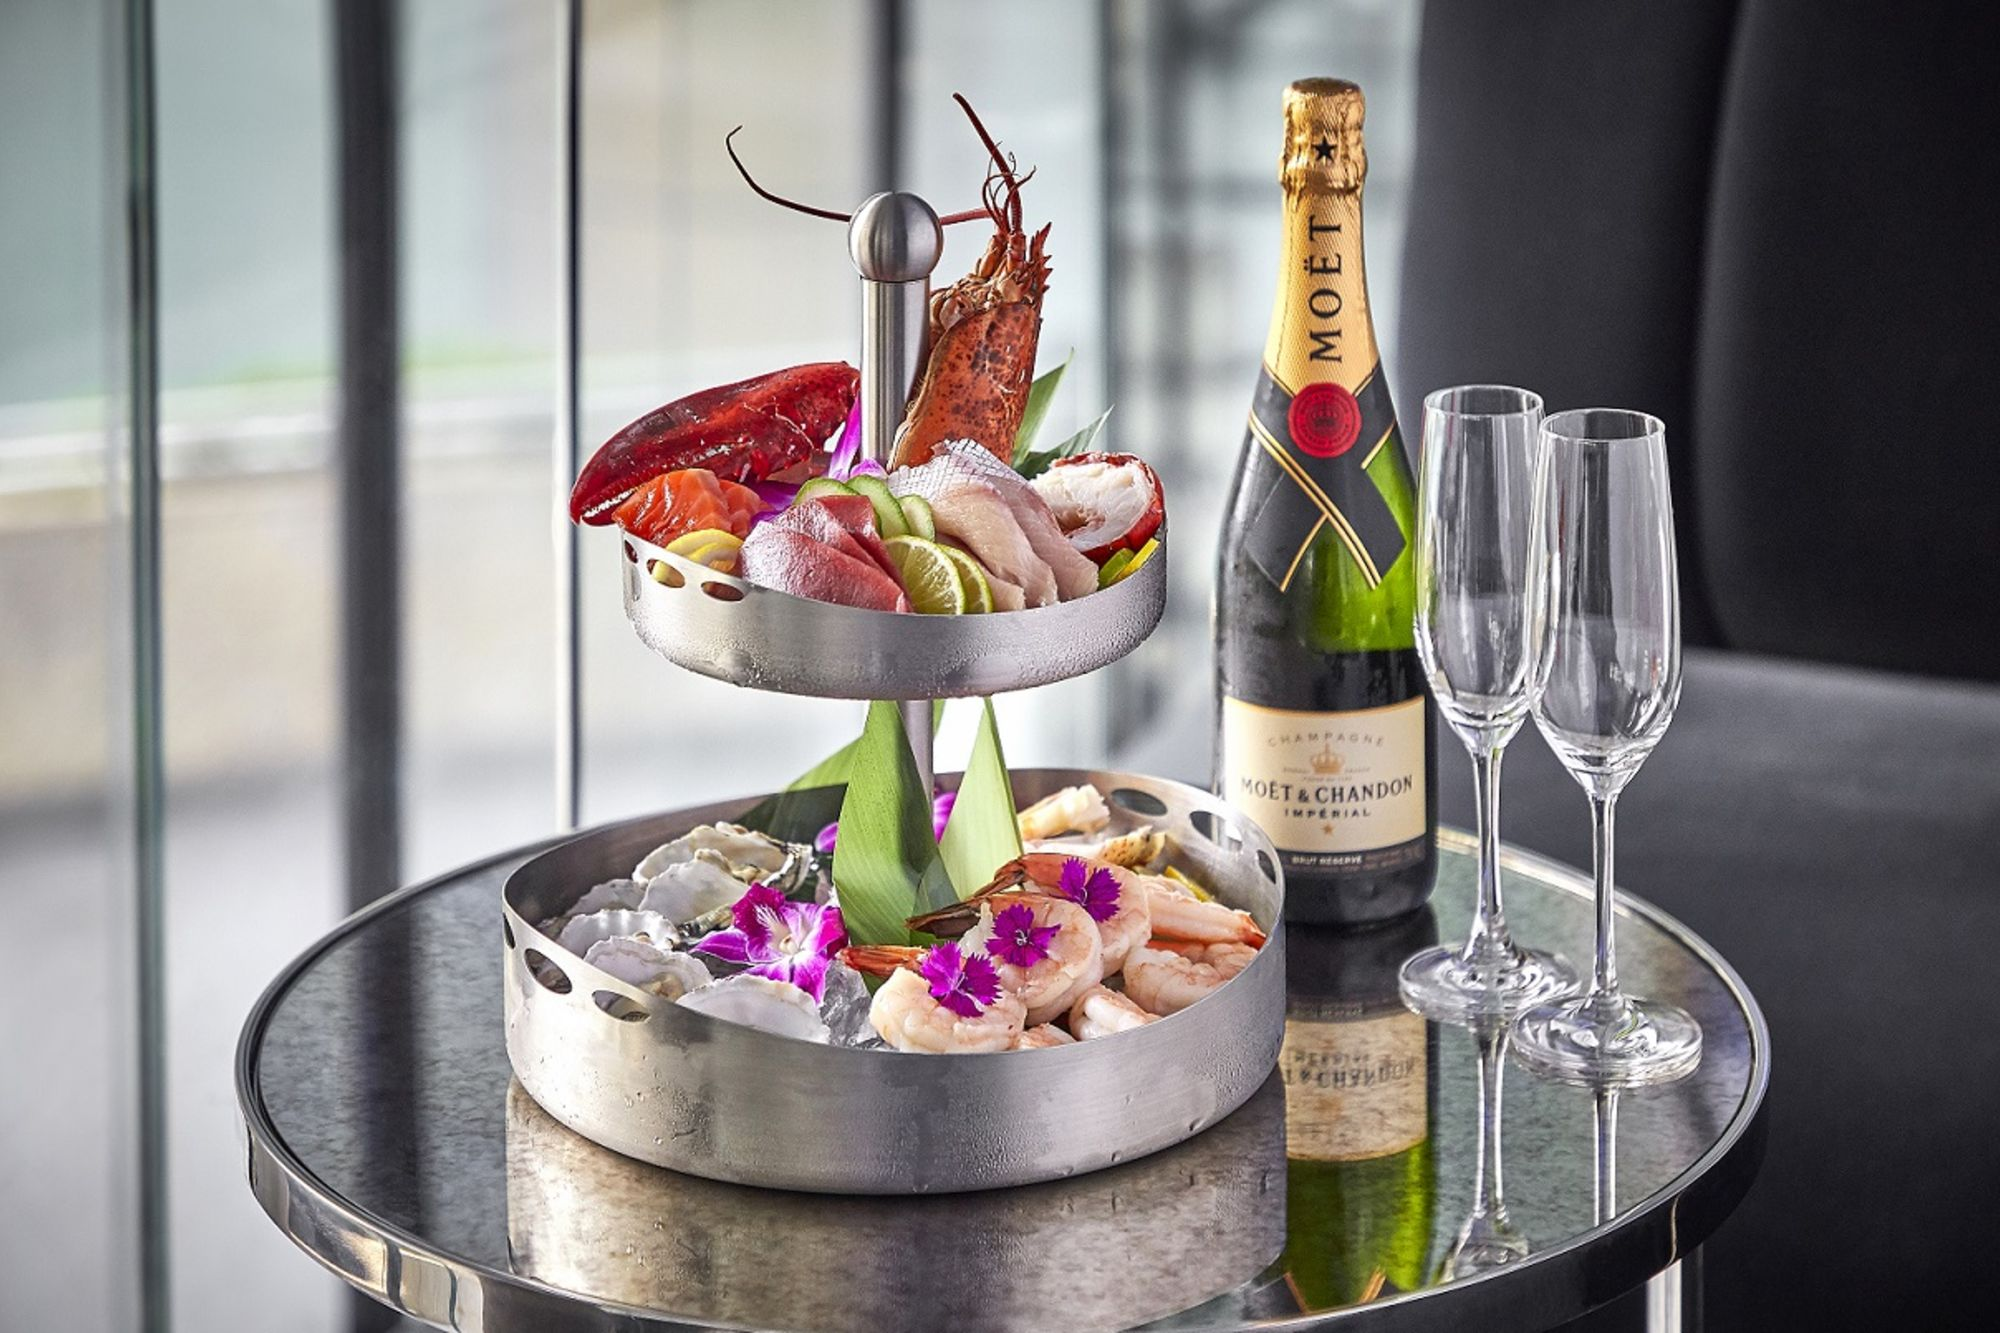 Seafood Tower and Champagne Bottle